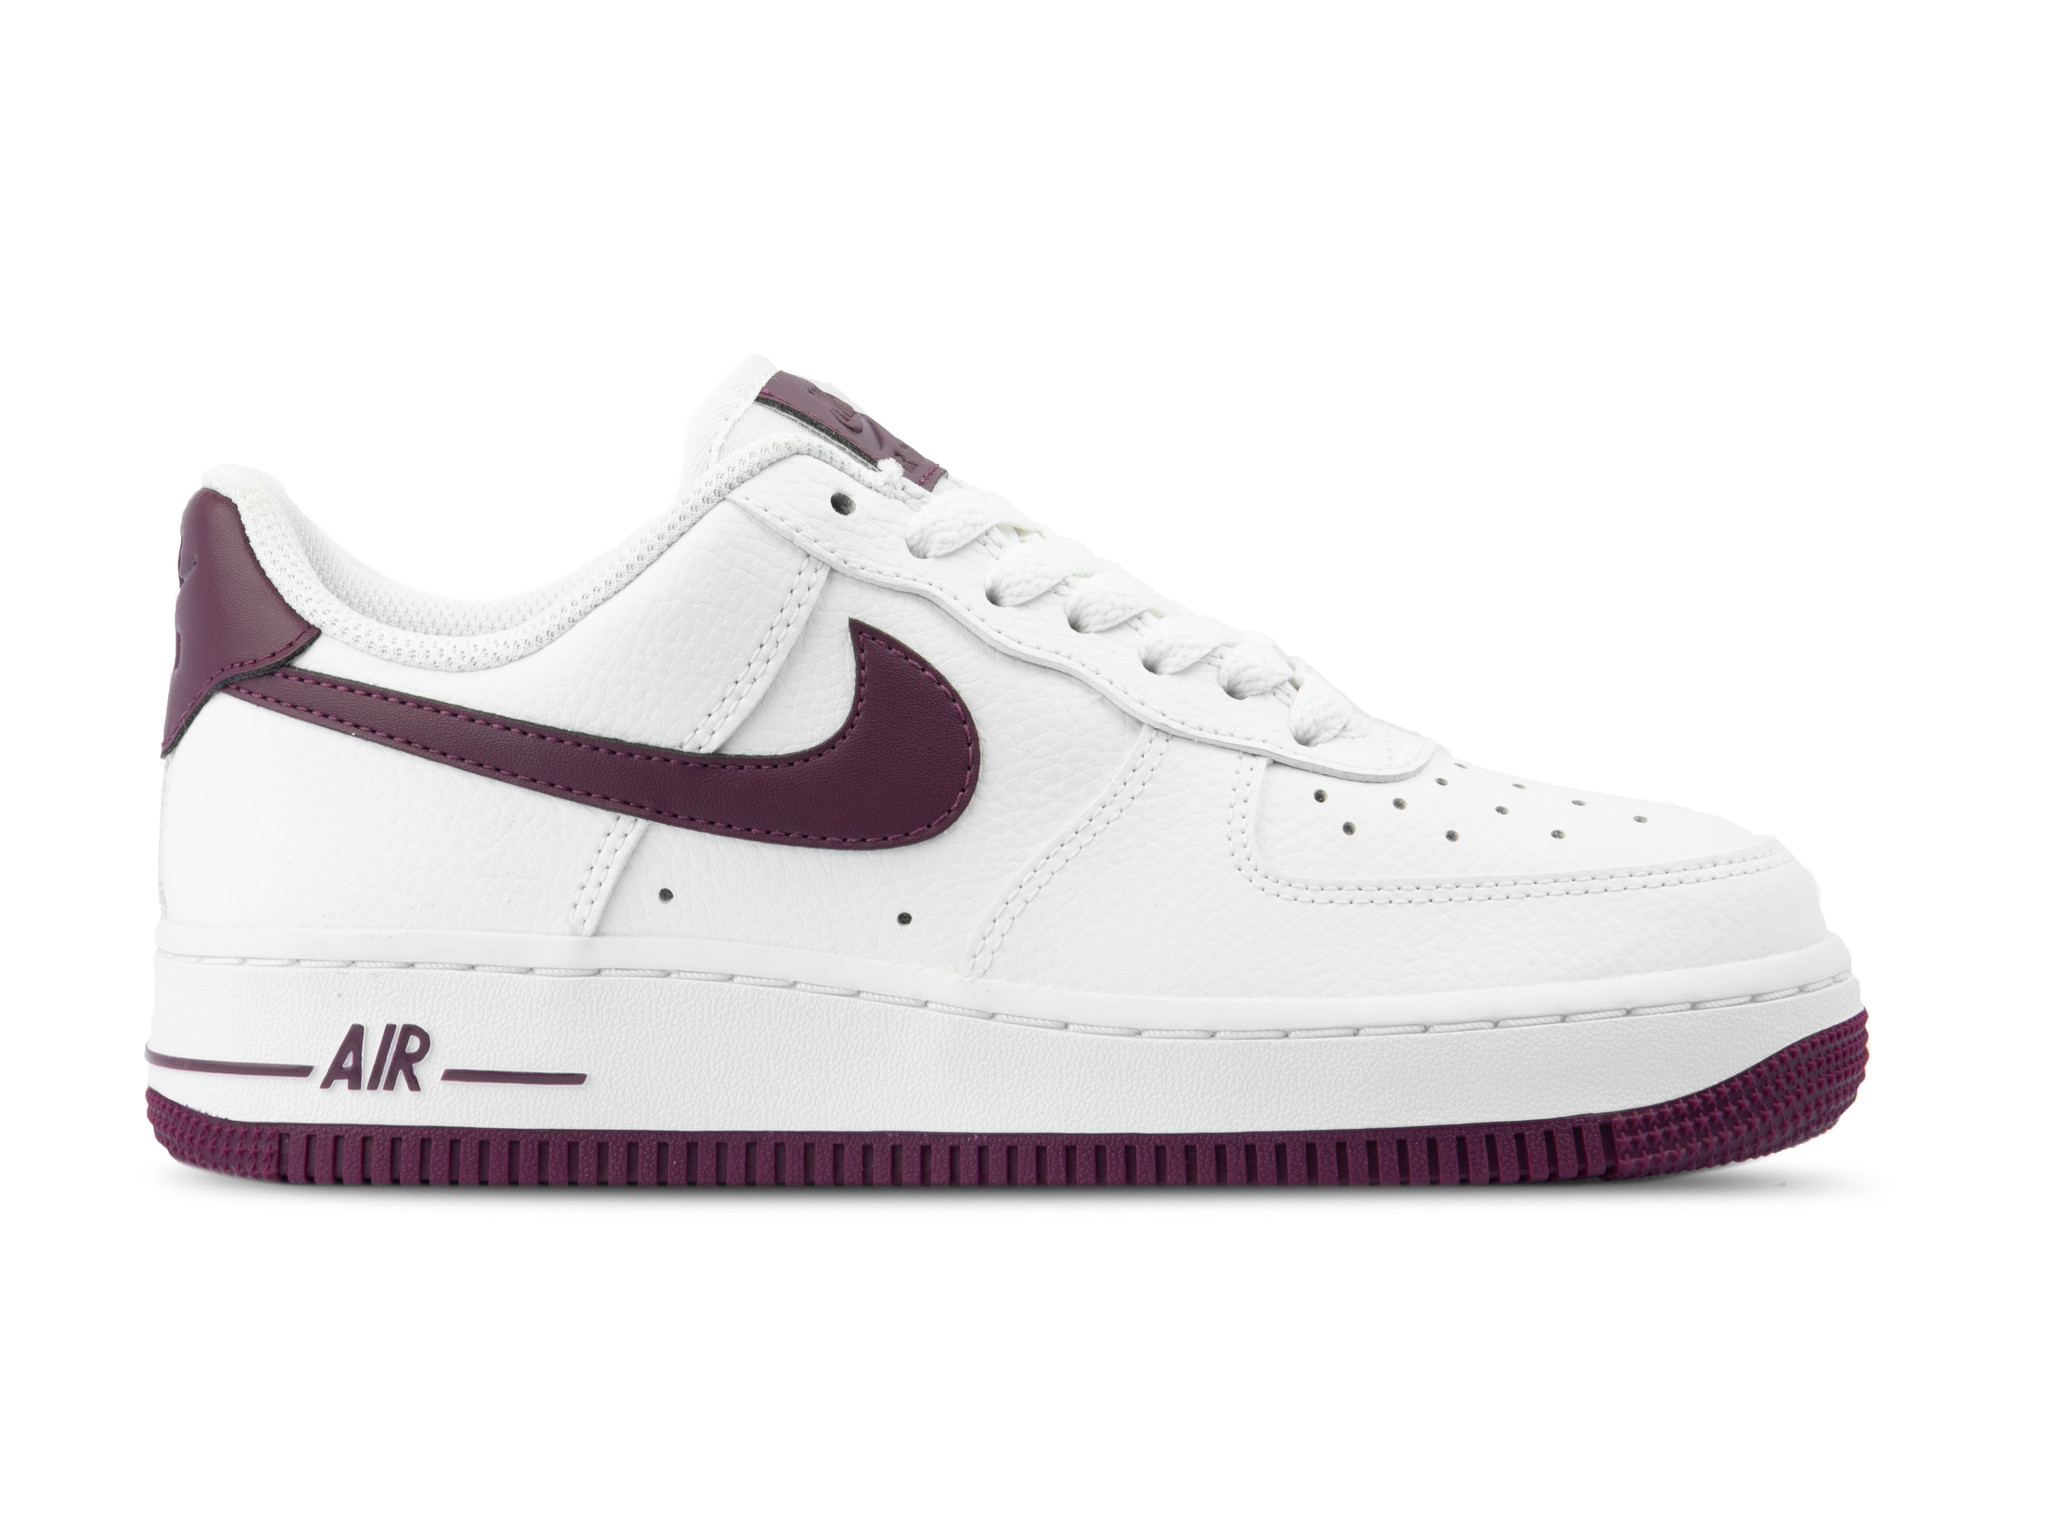 buy online 67420 803f4 Nike Air Force 1 '07 White Bordeaux AH0287 105 | Bruut Online shop ...